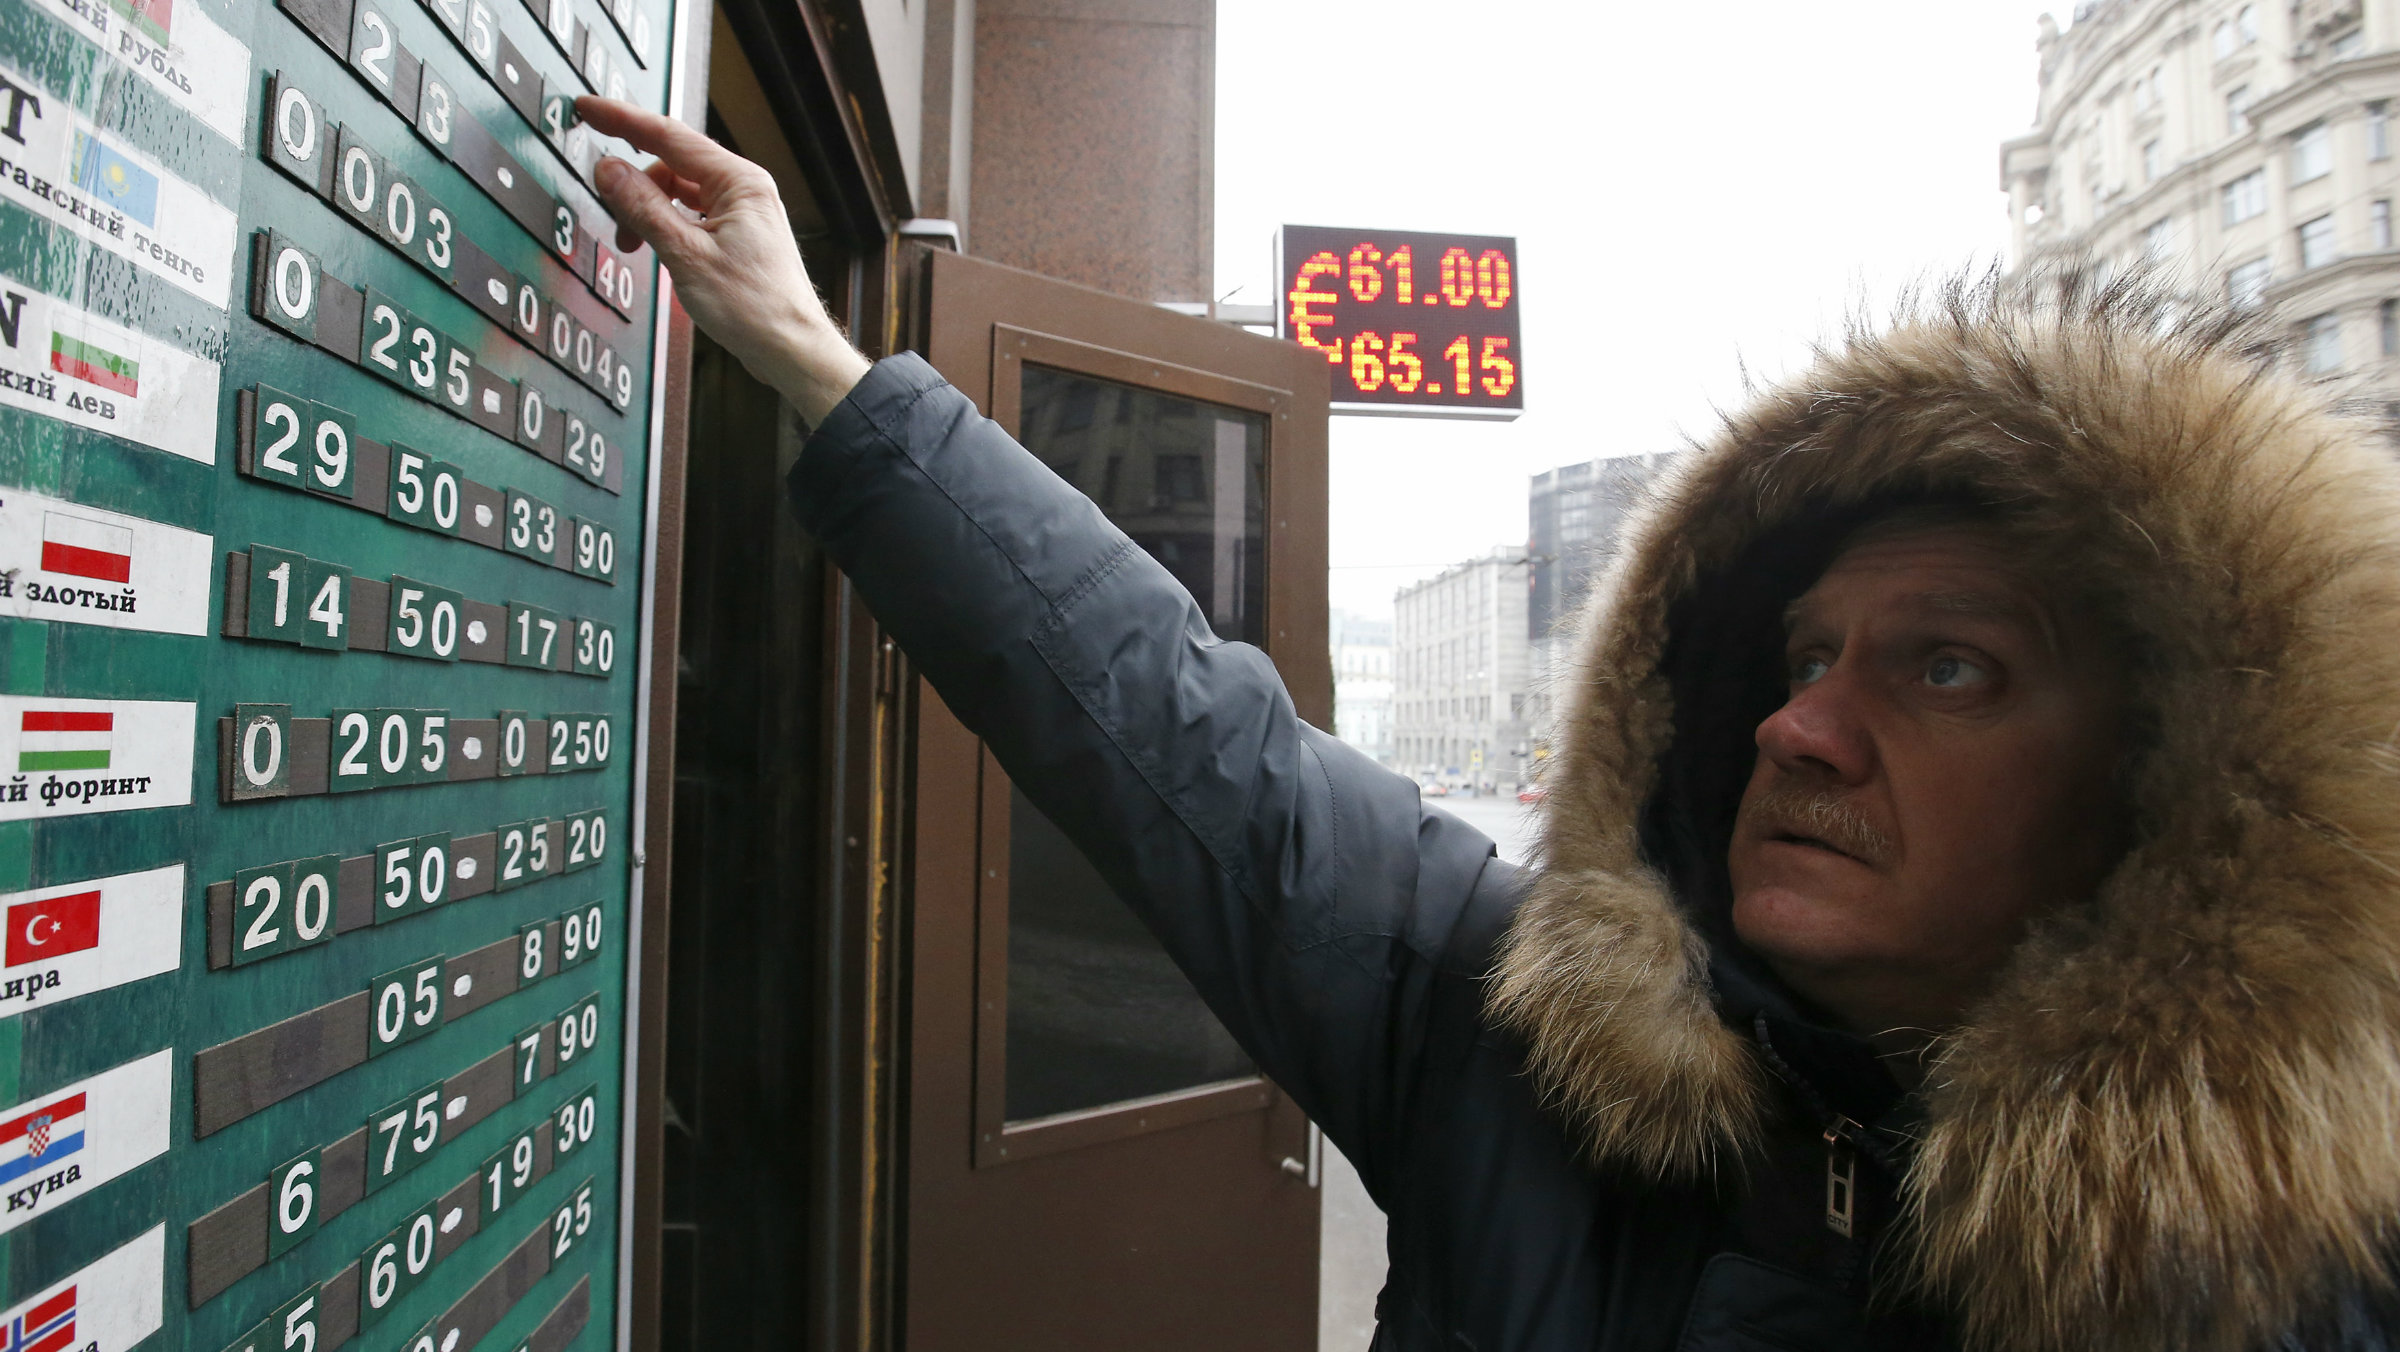 An employee changes figures on a board showing currency exchange rates in Moscow.